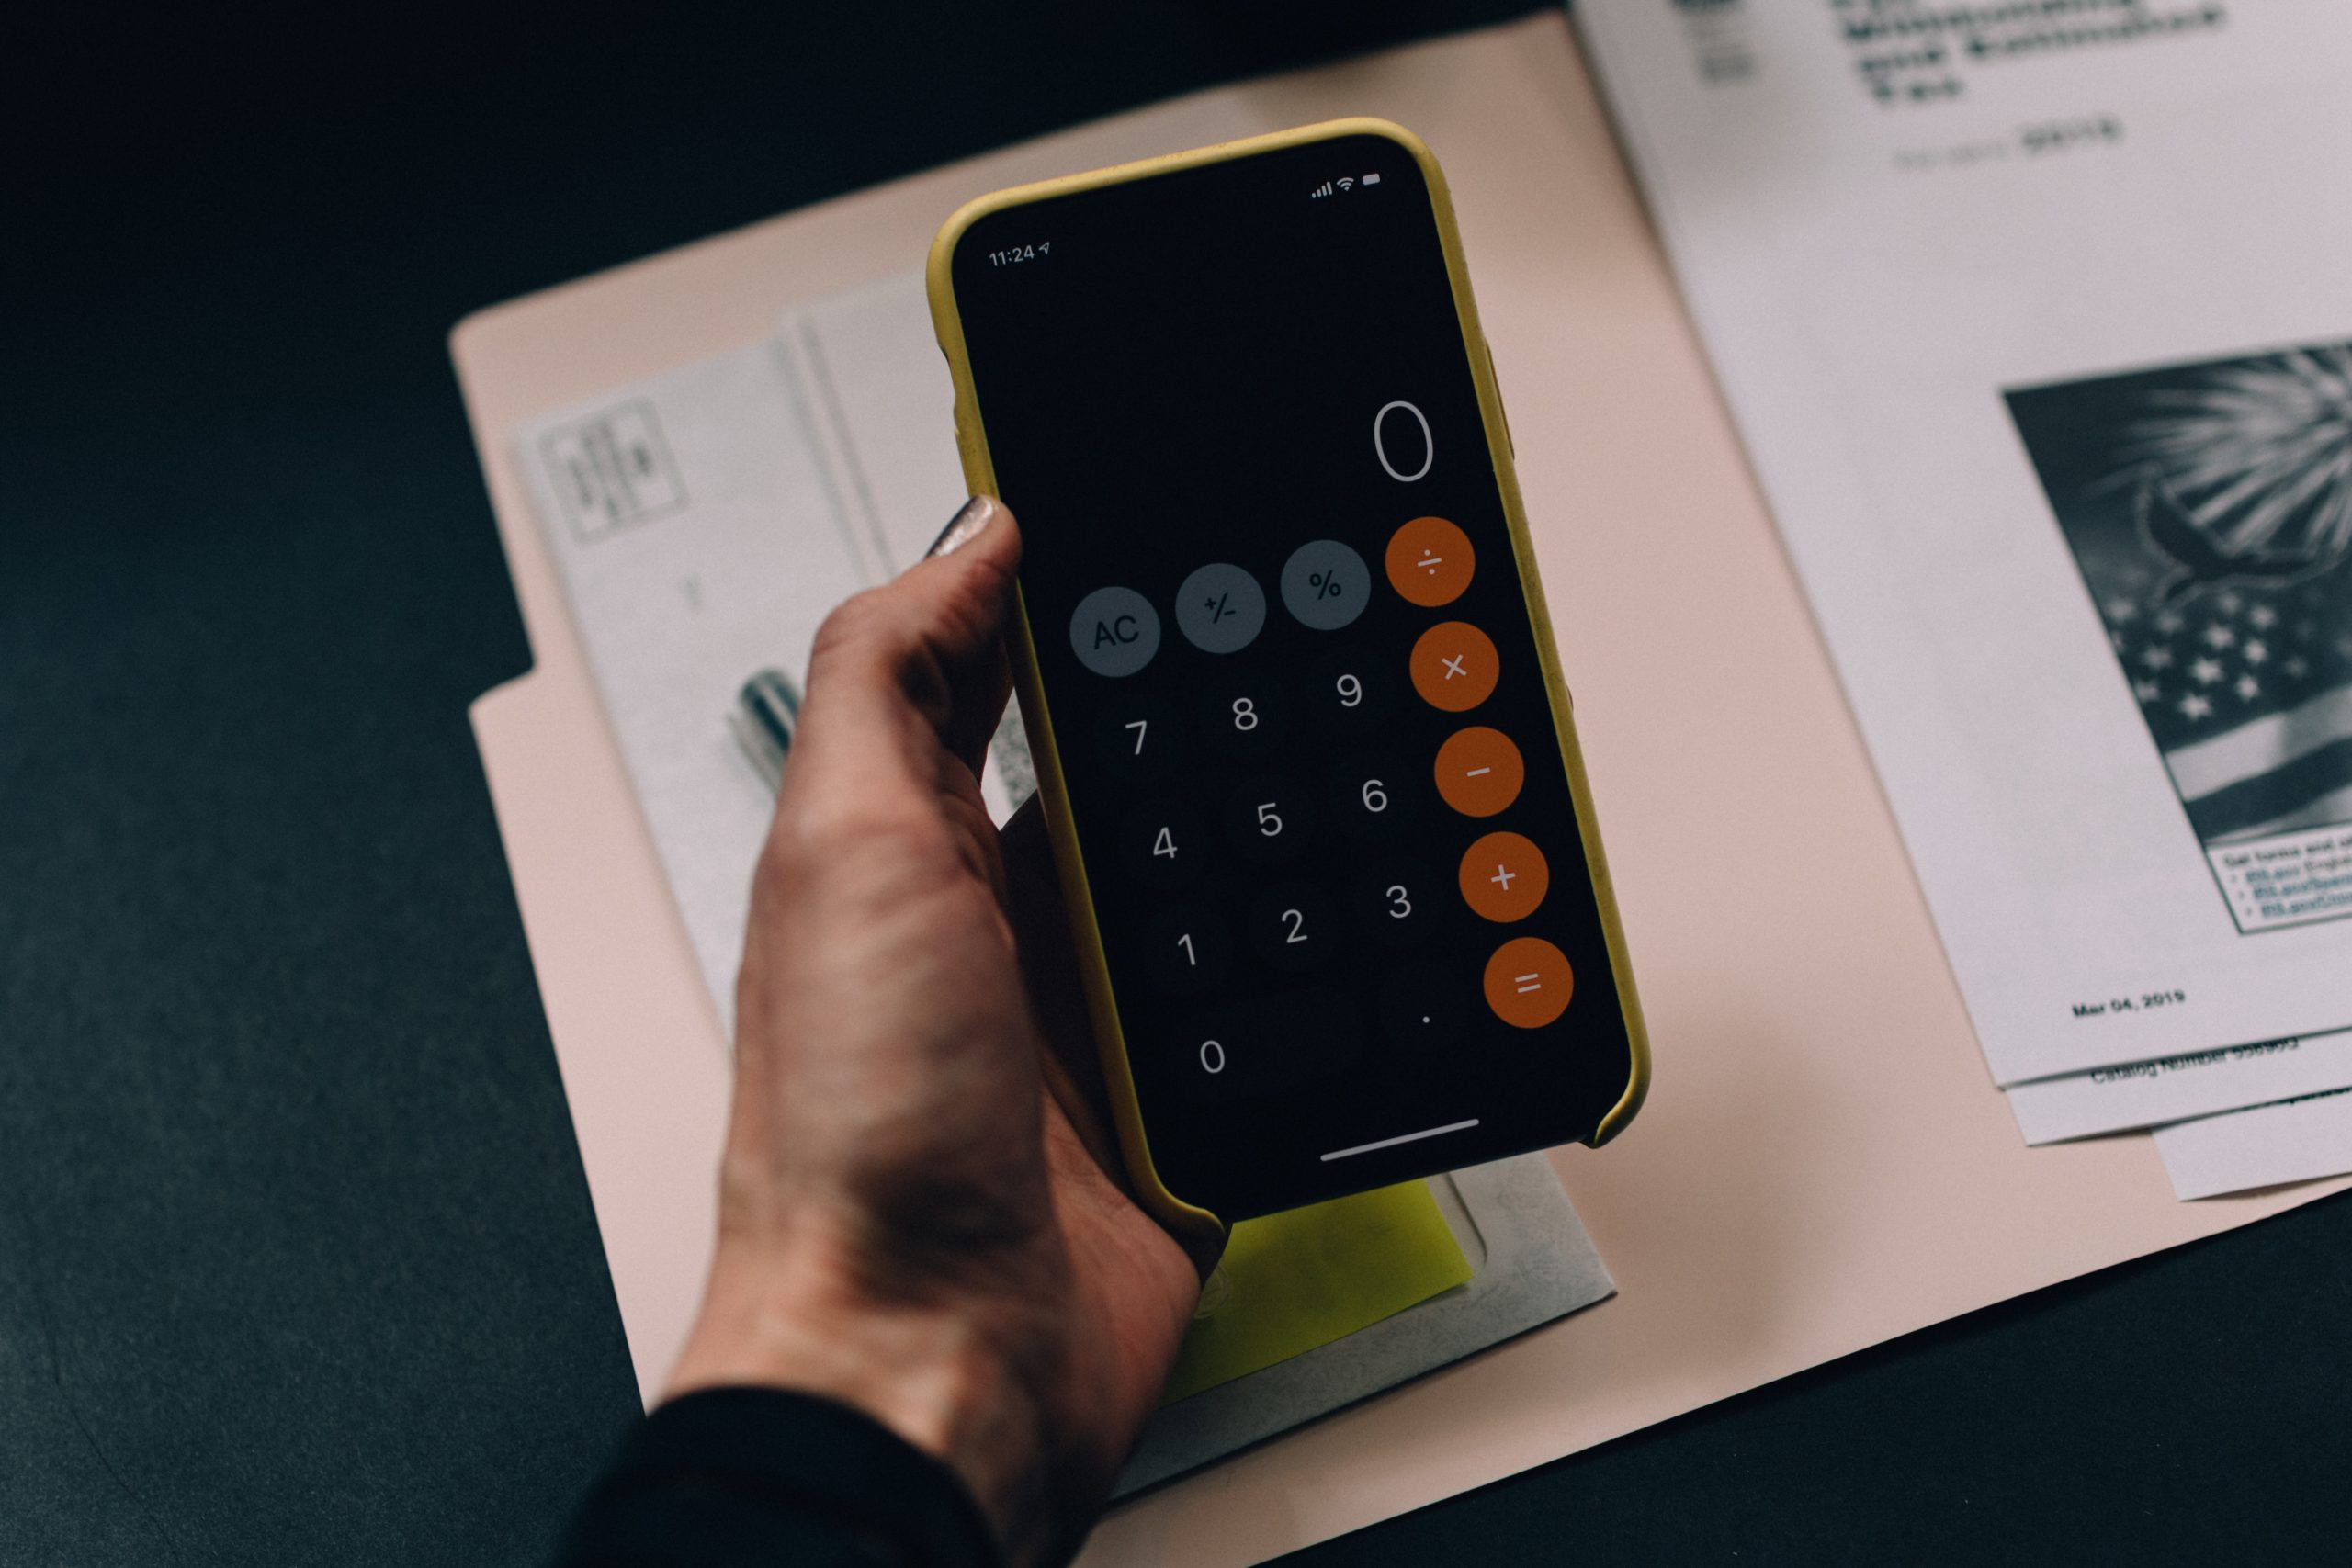 phone calculator for counting calories diet rules